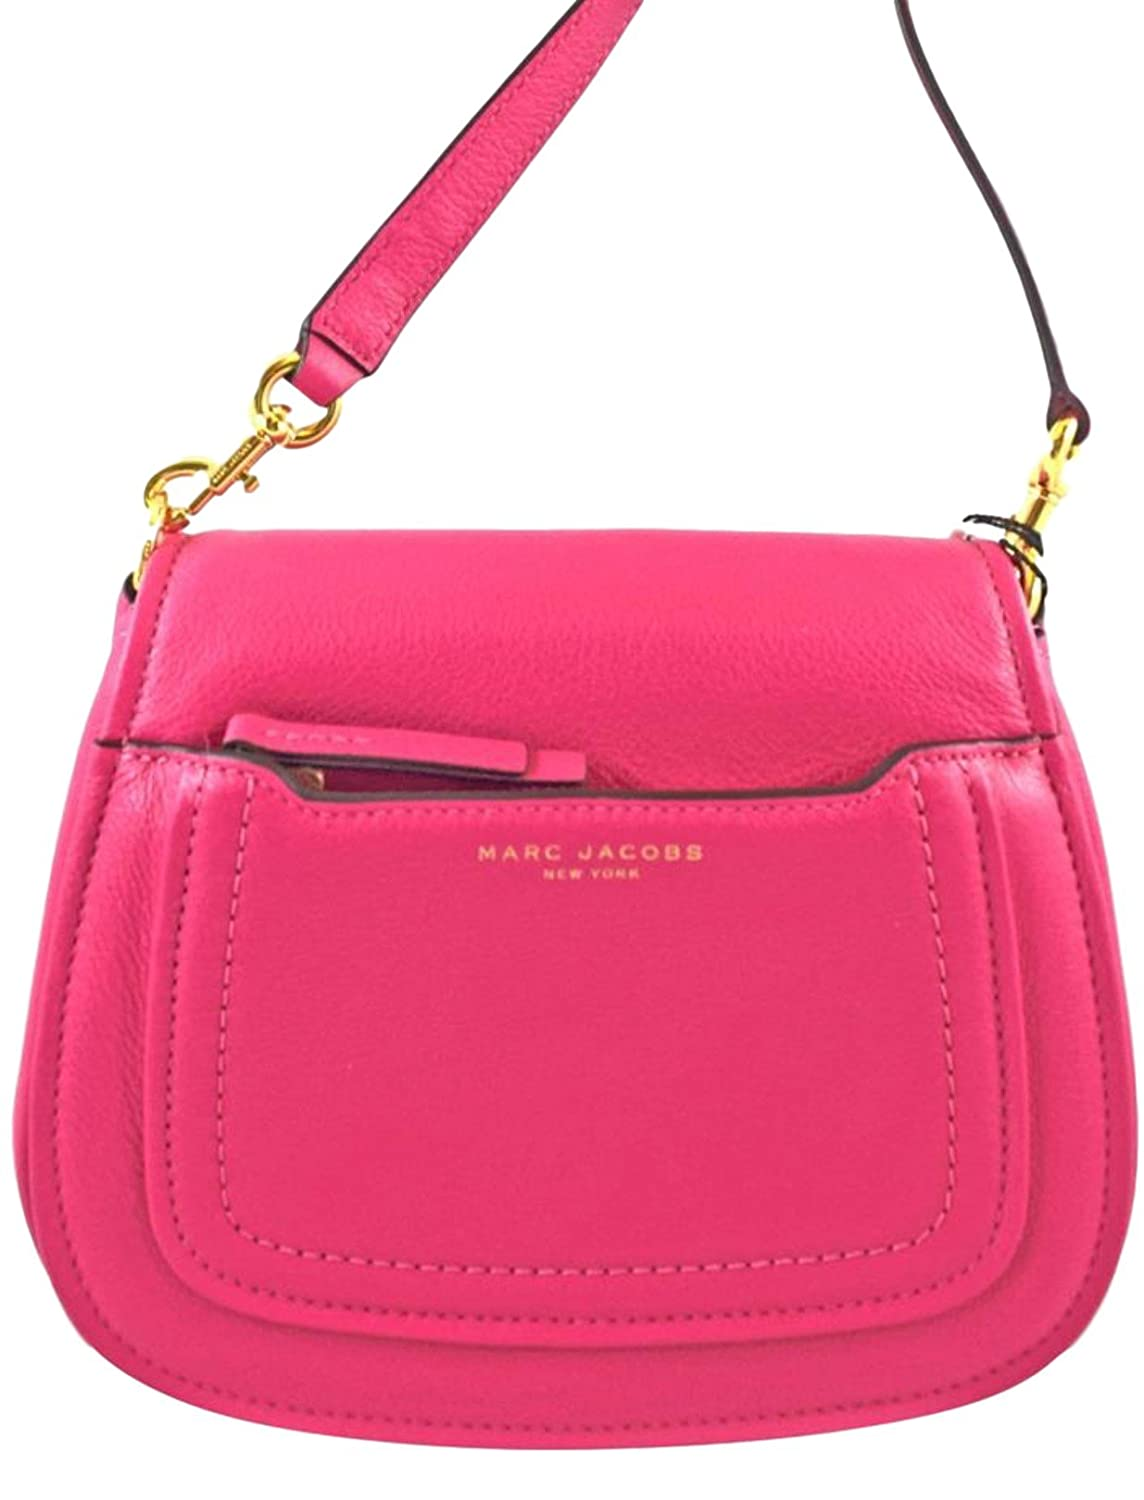 Marc by Marc Jacobs US サイズ: S カラー: ピンク B07FRSJ26Z